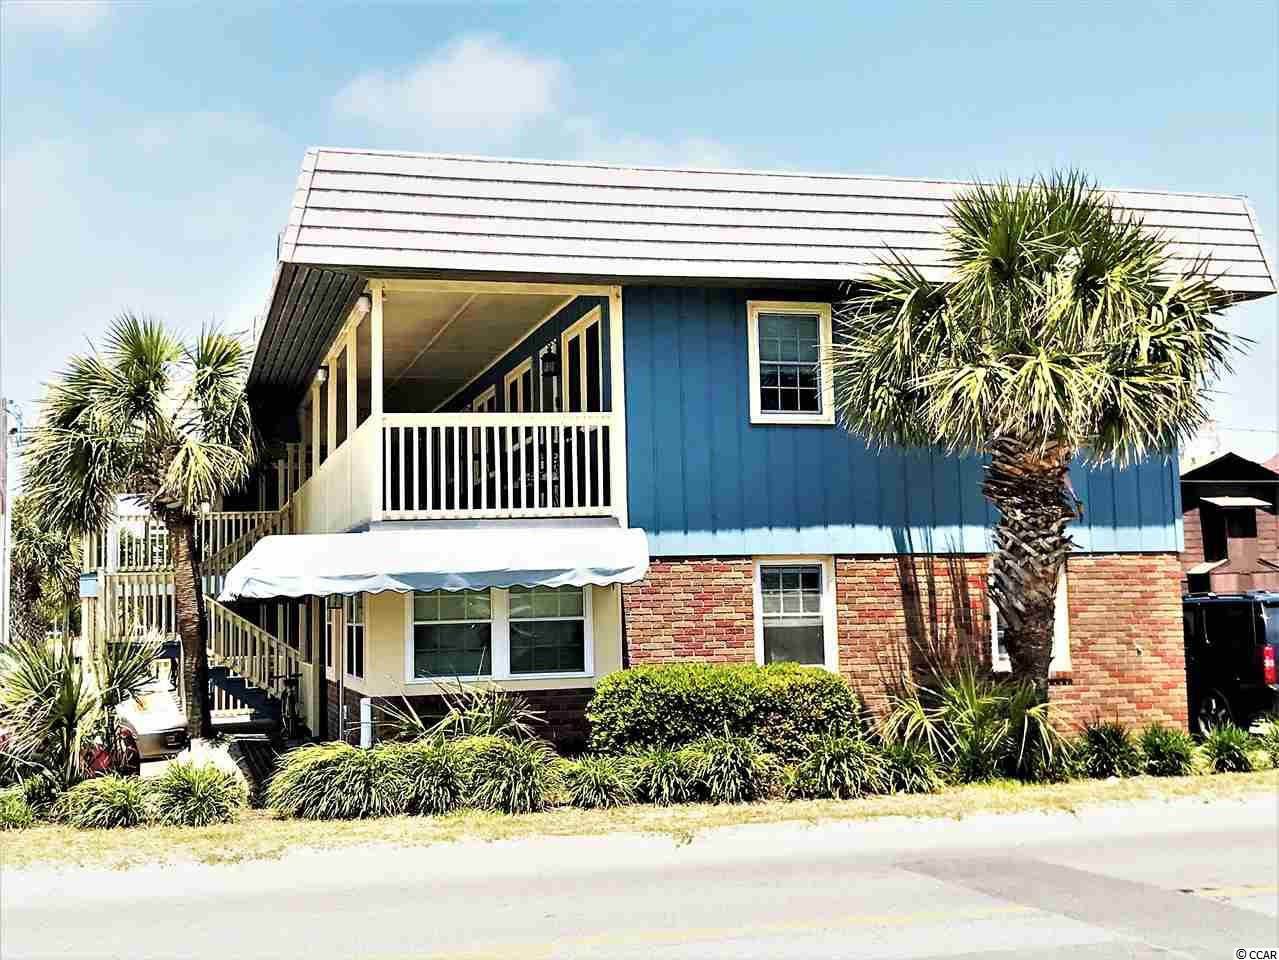 "LOCATION, LOCATION, LOCATION!! Enjoy the ocean breeze sitting on the front porch or relaxing on the sofa in this ADORABLE 2nd floor Cherry Bay condo, located directly across the street from the ocean in sought after Cherry Grove Beach.  This extremely well maintained unit is fully furnished and move-in ready with a queen-sized bed and queen-size futon sleeper sofa easily sleeps 4.  Steps away from the beach!  For  an investor or someone just wanting a ""place at the beach"" for a little R&R, or both!!"